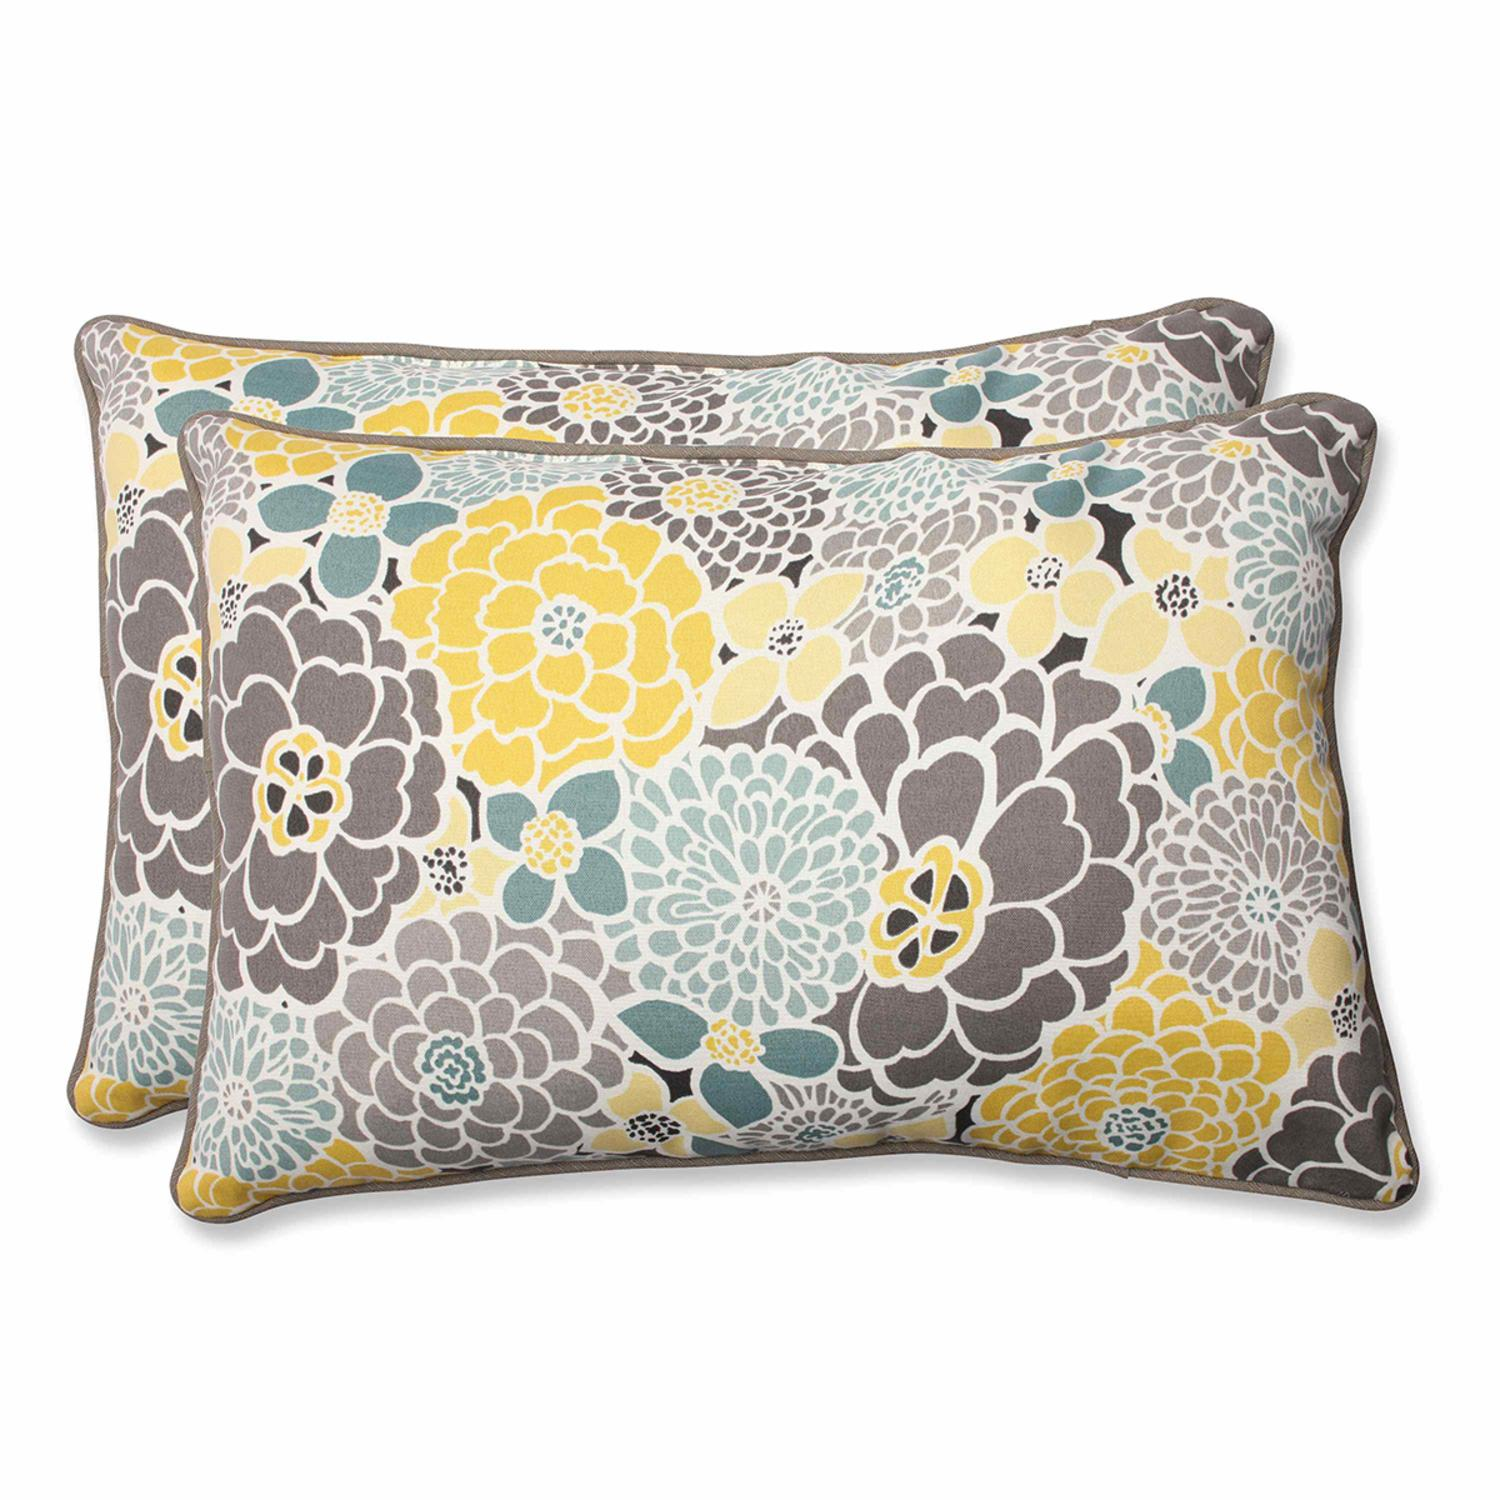 Set of 2 Yellow, Blue and Gray Flor Grande Outdoor Corded Rectangular Decorative Throw Pillows 24.5""